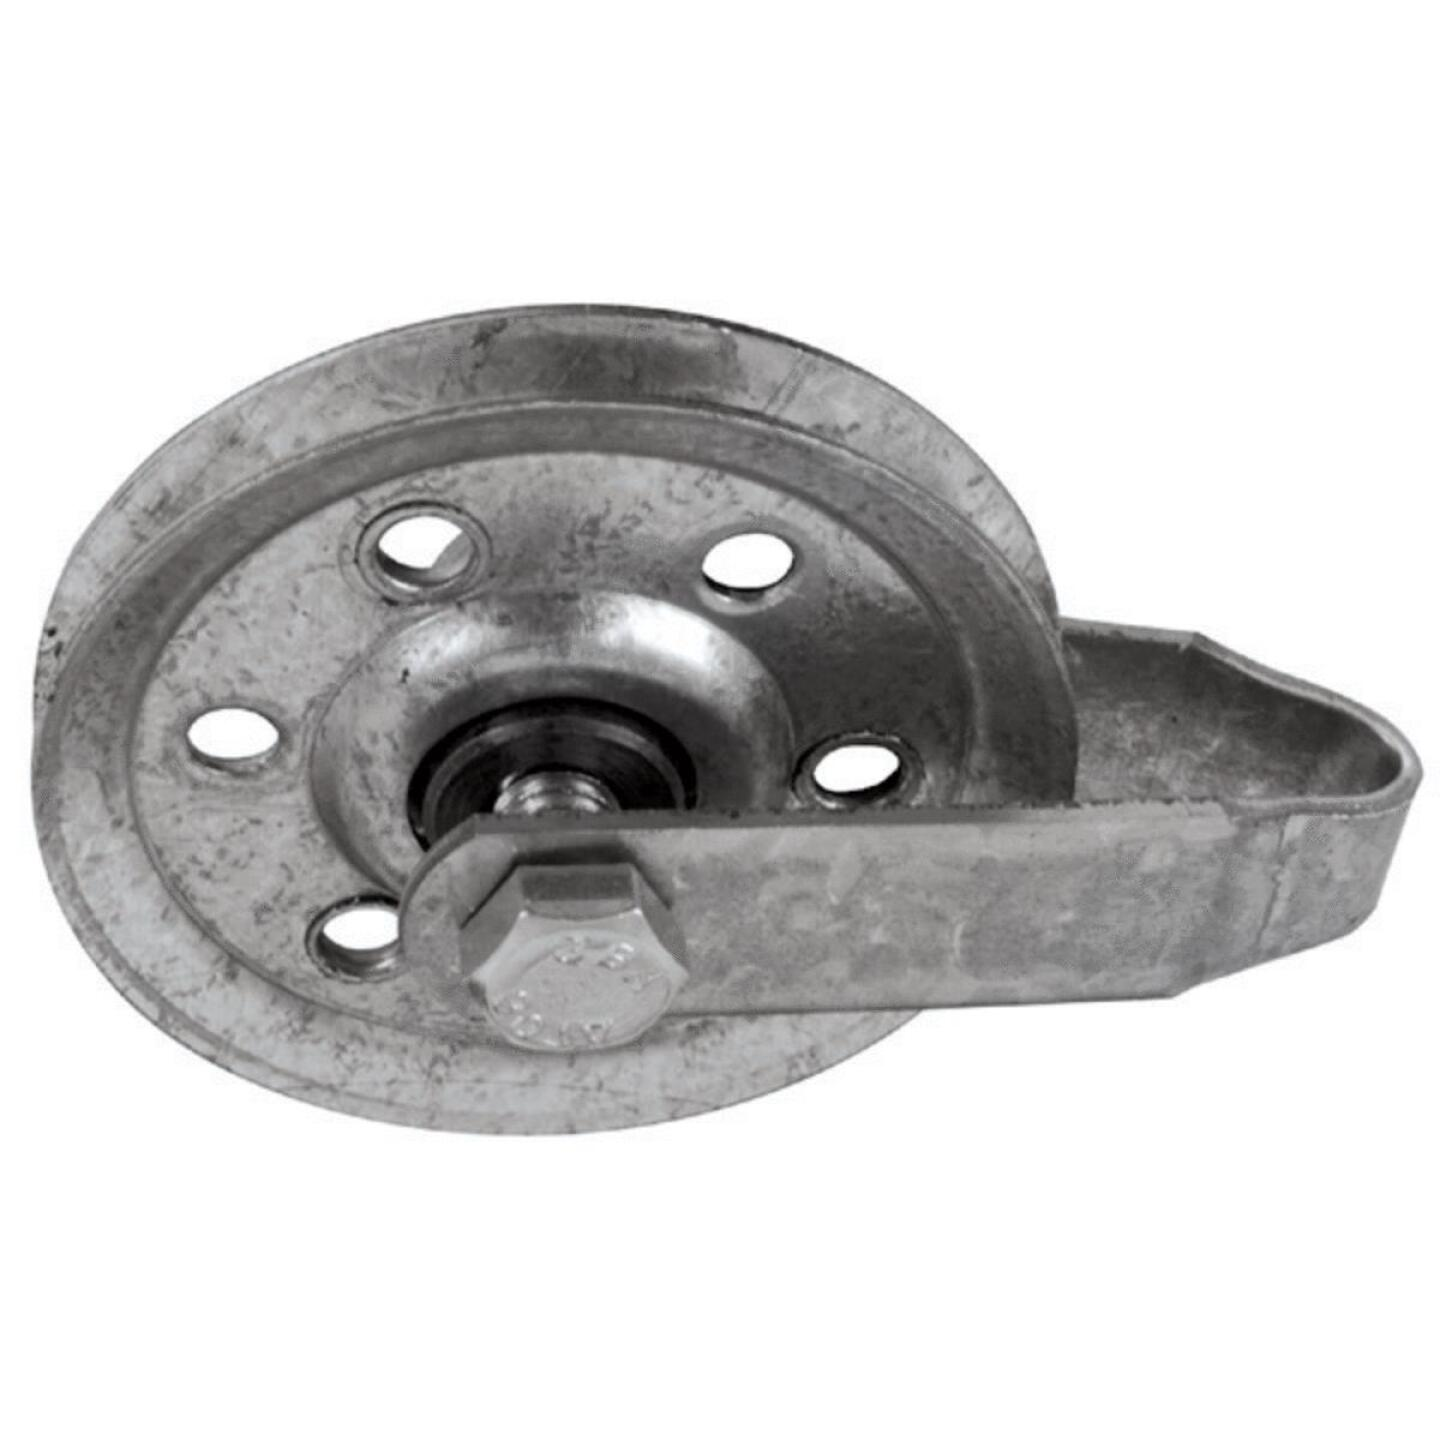 National 3 In. Single Garage Door Pulley Image 2